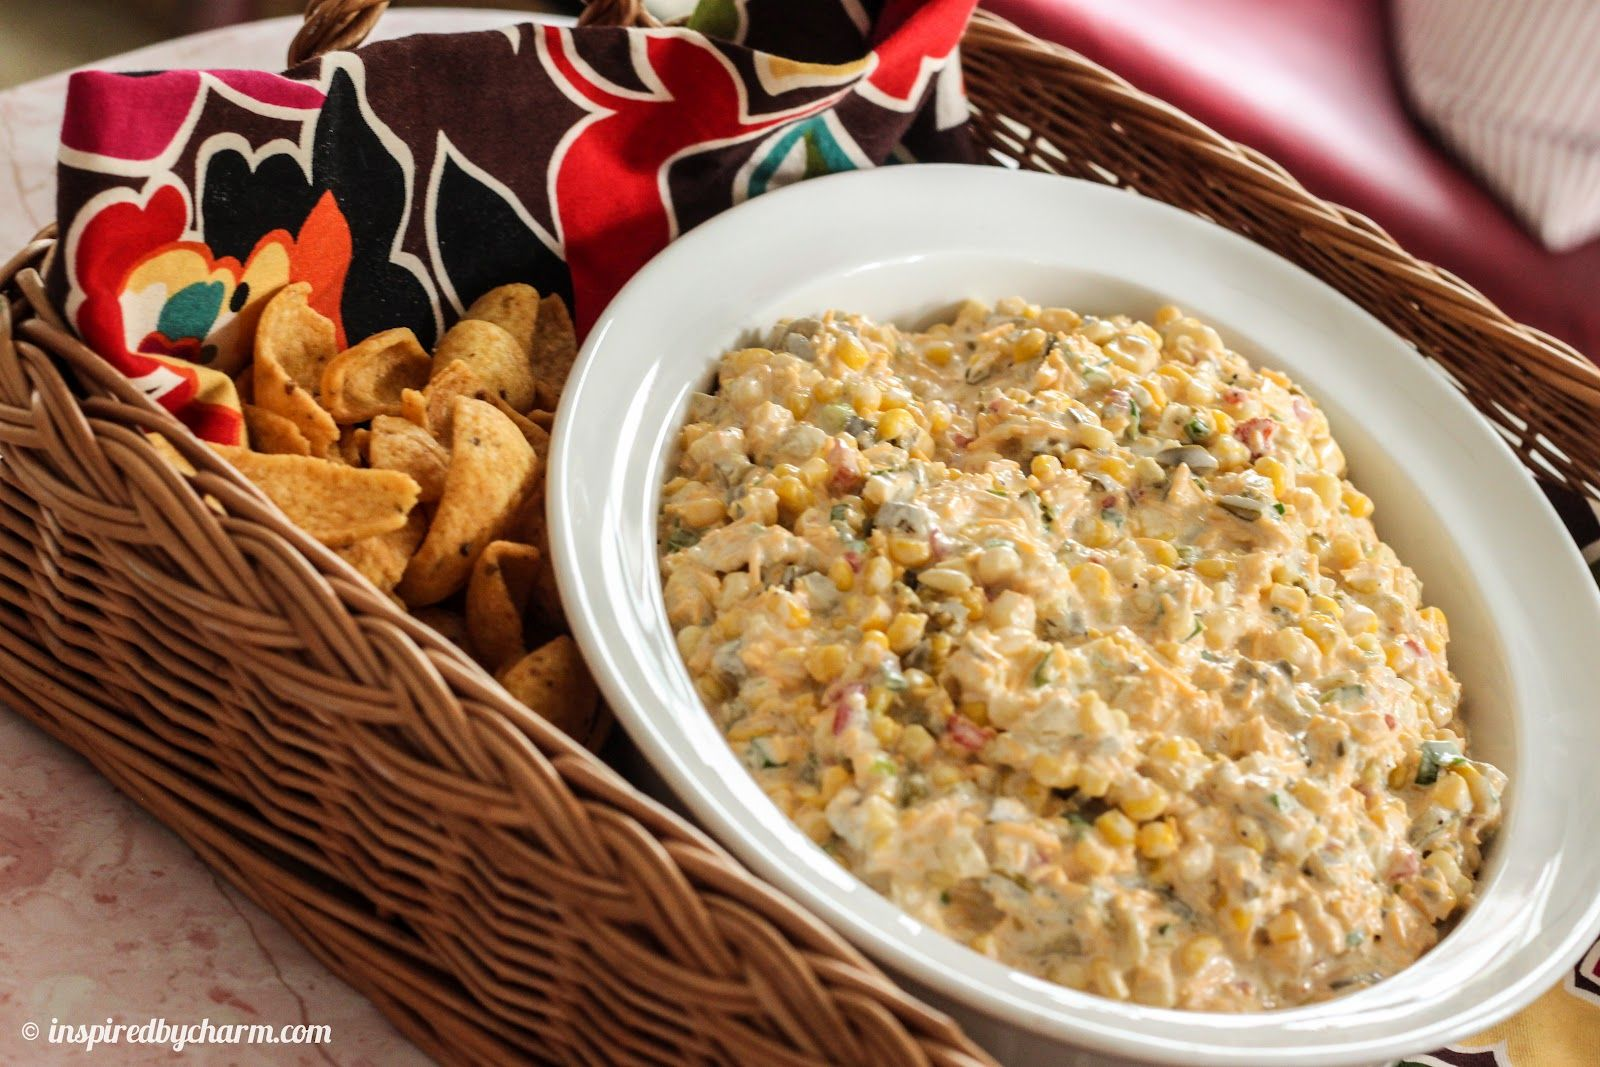 inspired by charm: Out-of-this-World Corn Dip